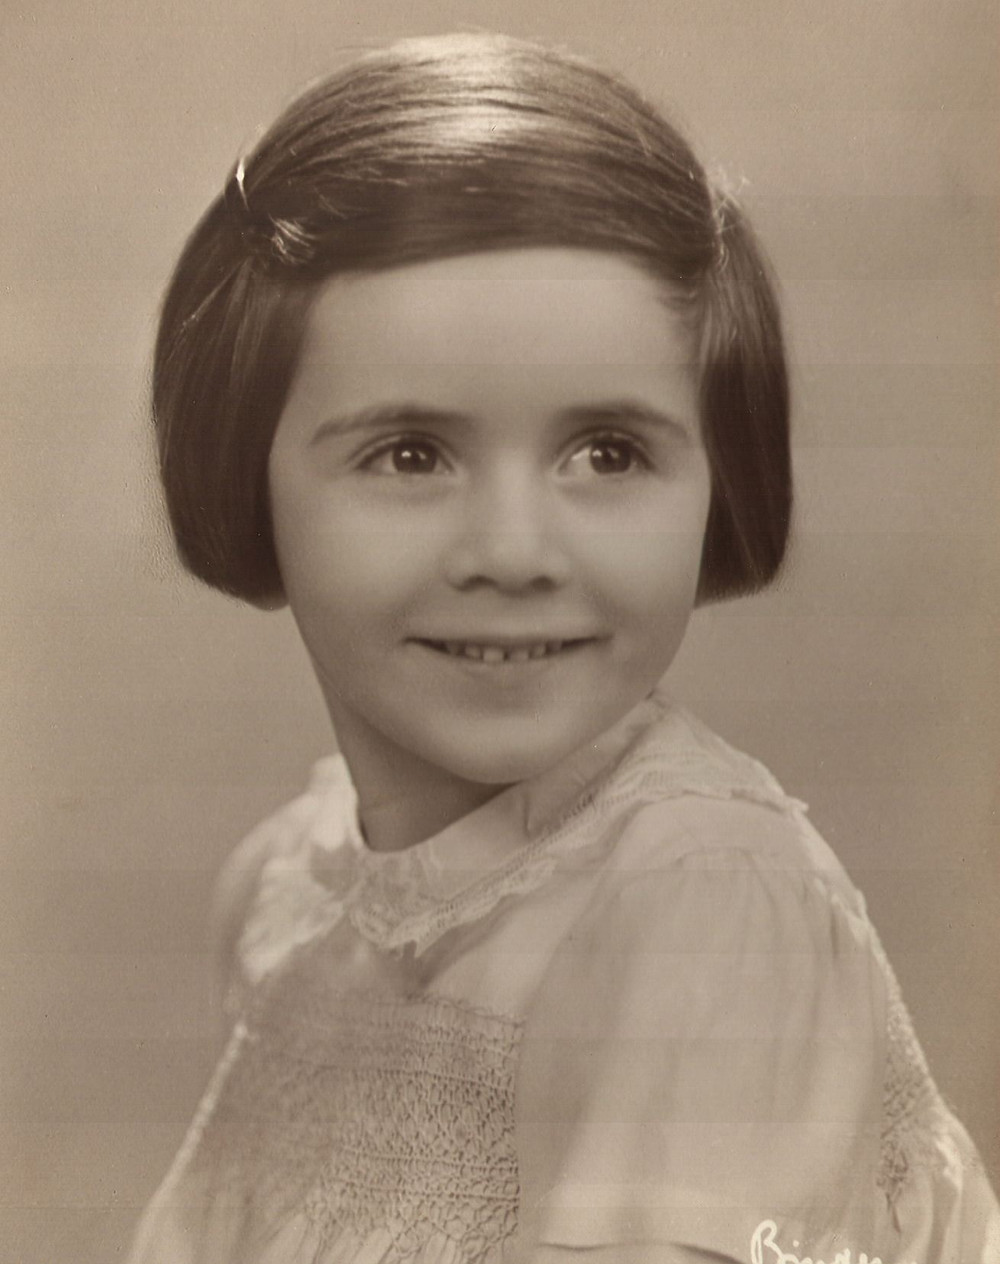 Margaret at age 4 in Germany 1929